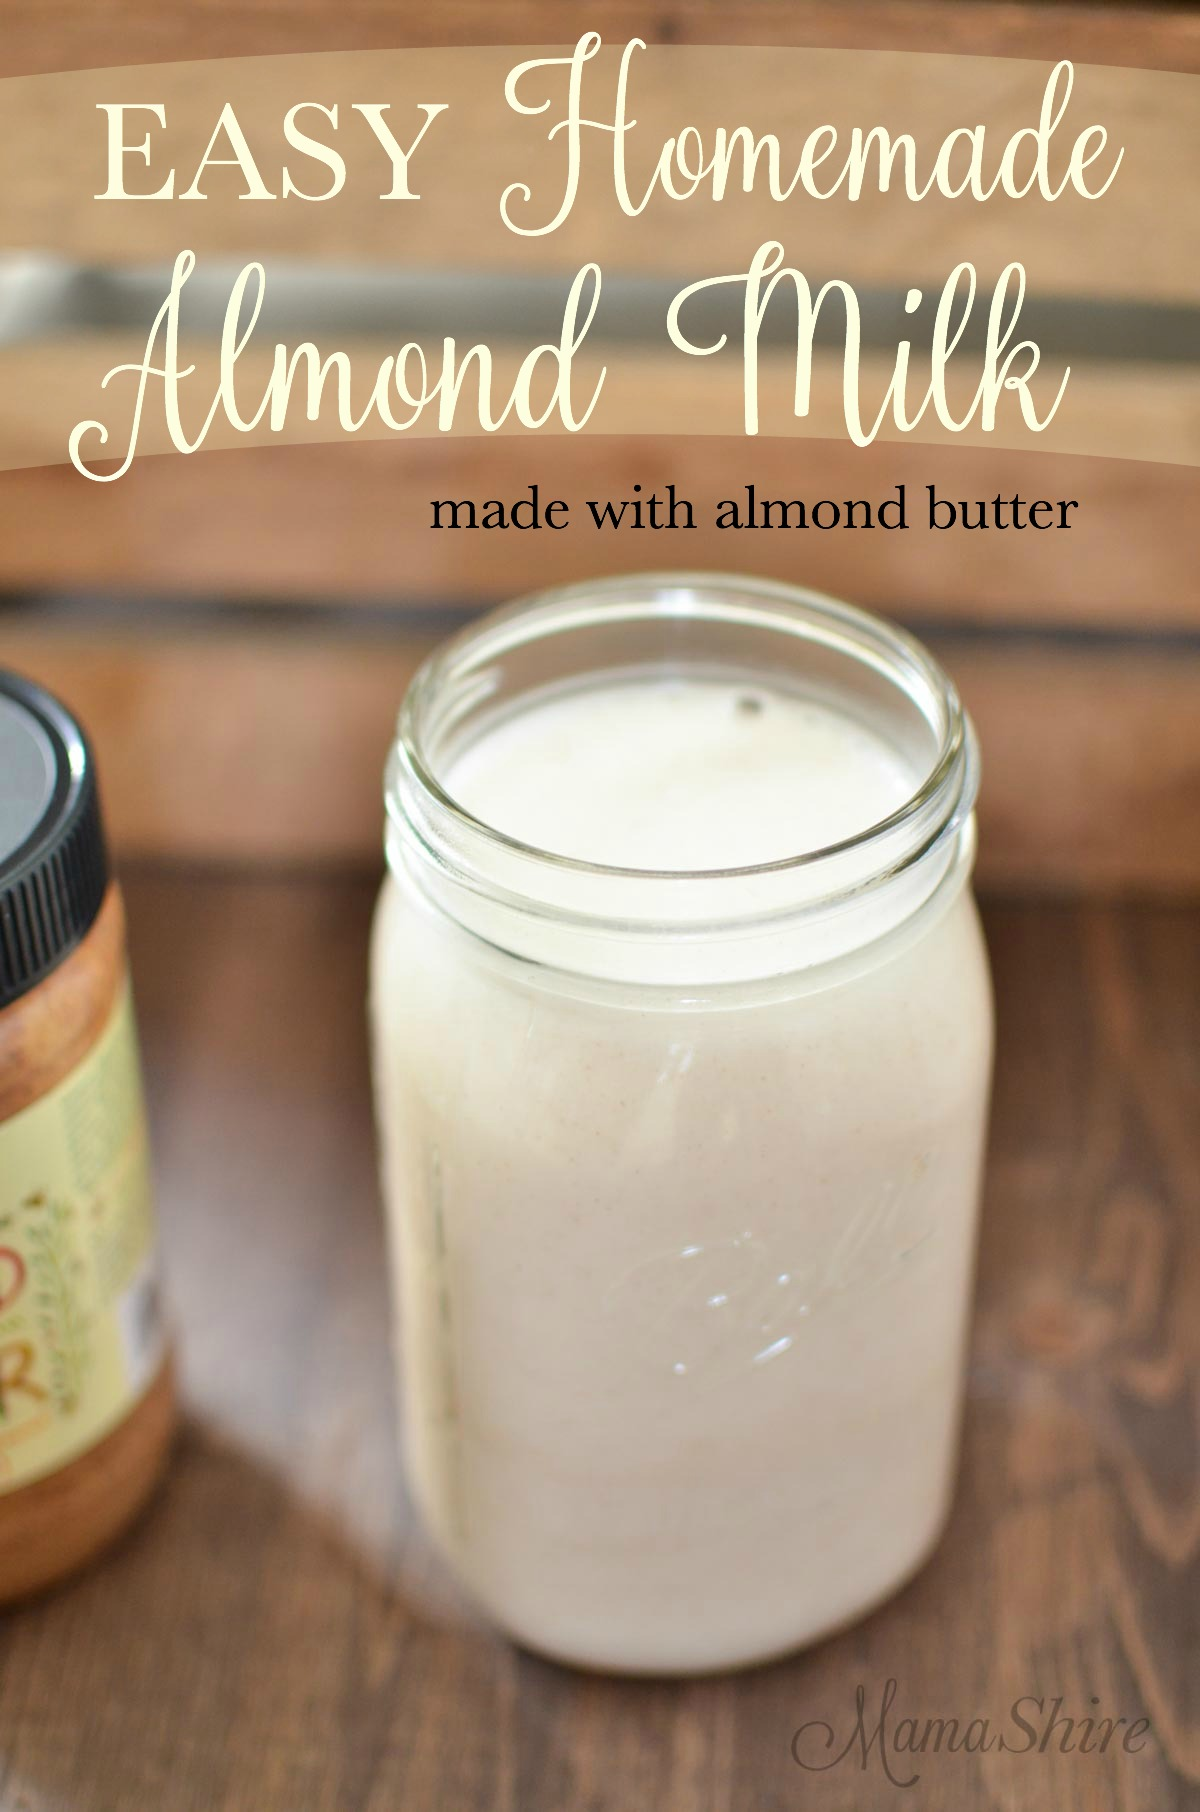 Easy Homemade Almond Milk made with almond butter. - MamaShire.com